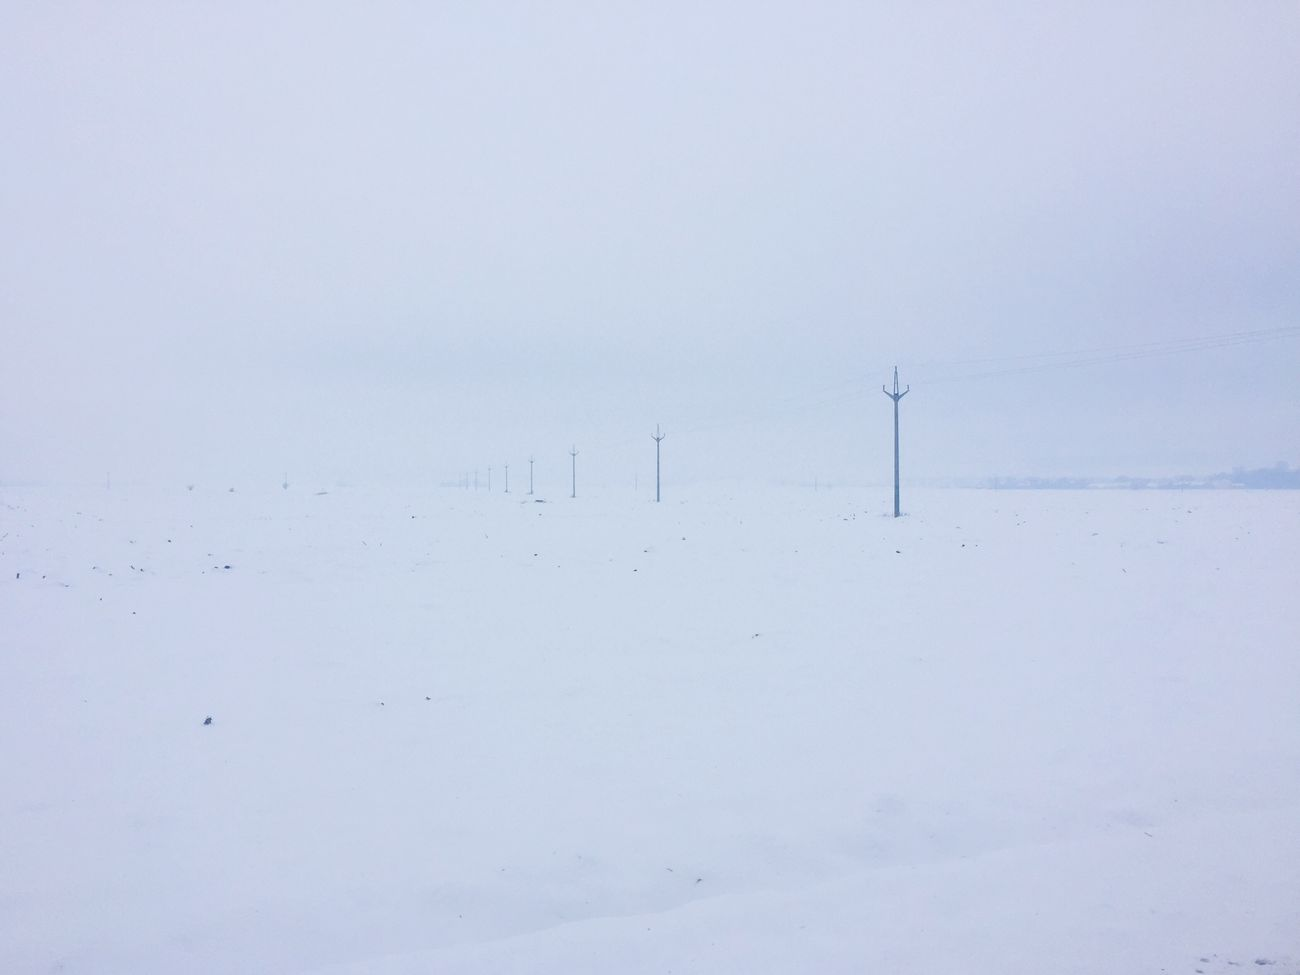 Winter view in Slovakia Winter Nature Slovakia Snow Landscape Electricity Pylon